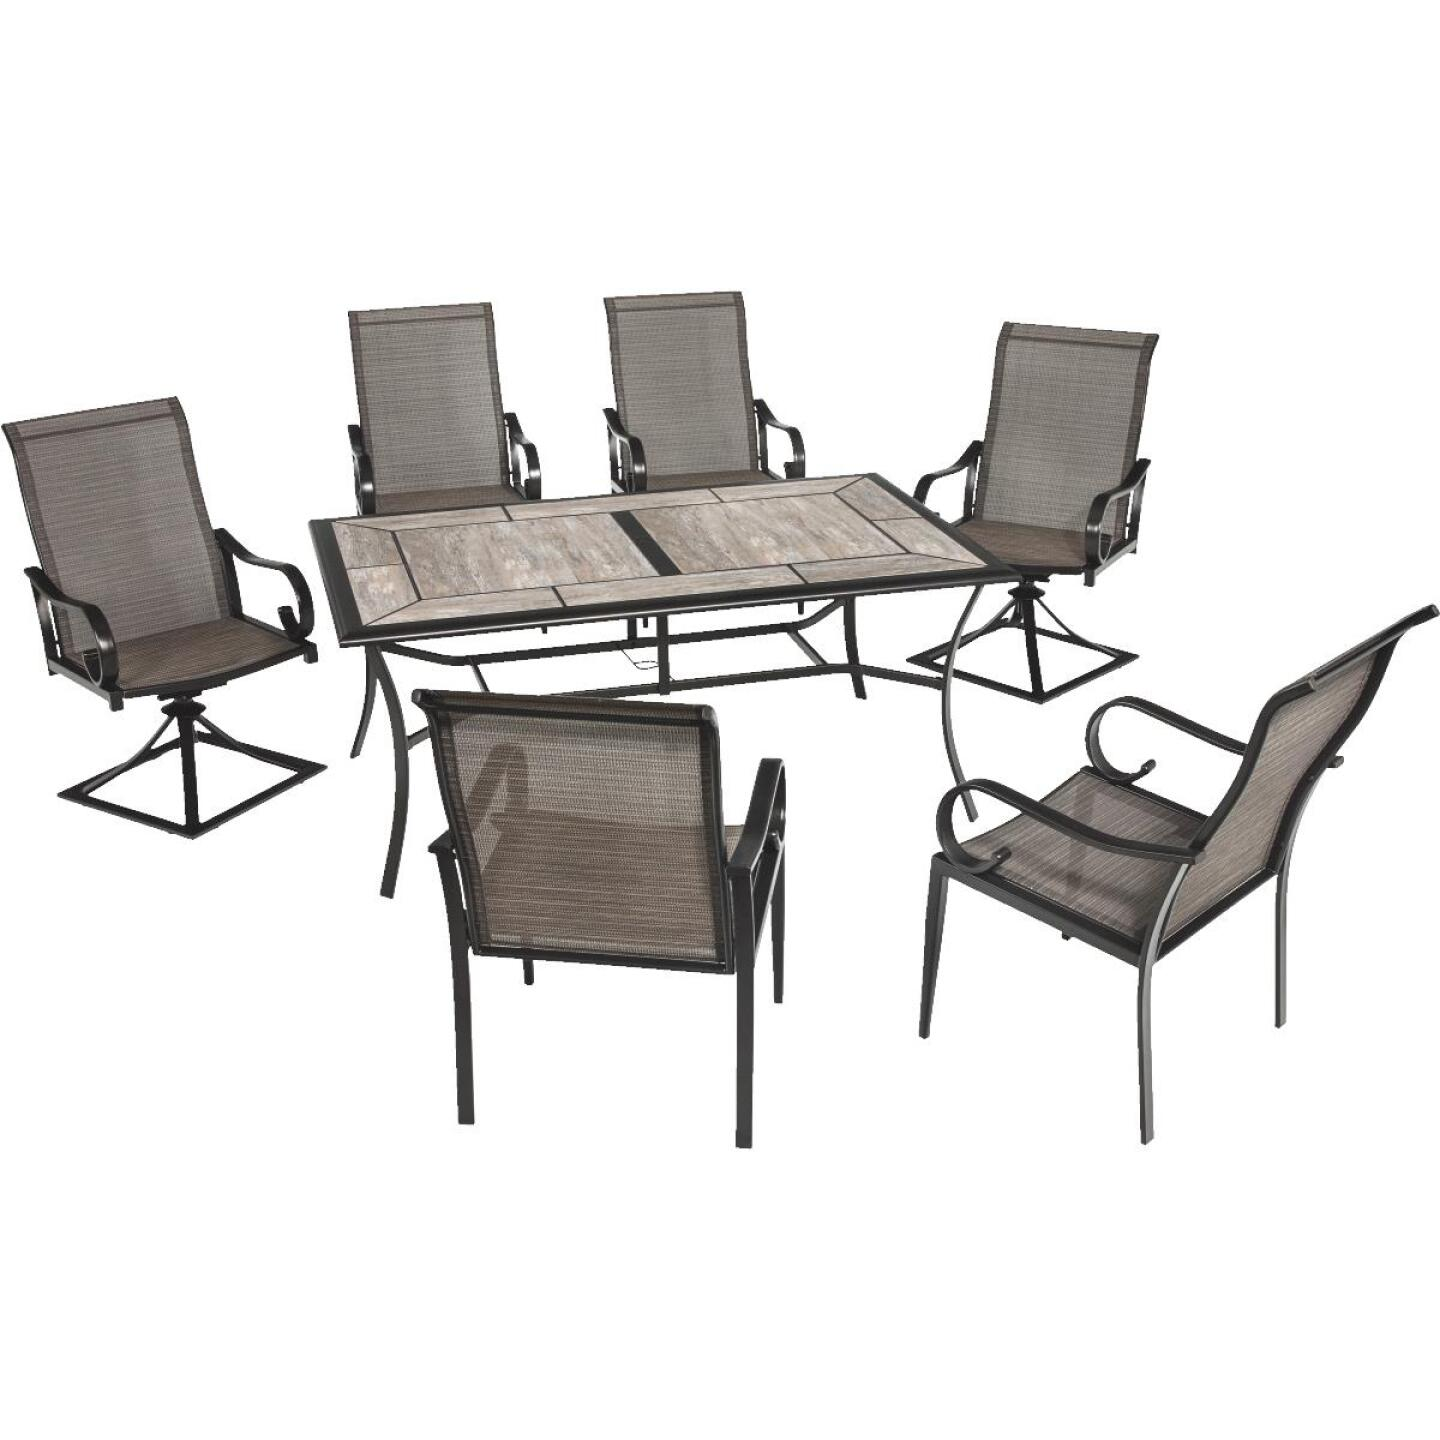 Outdoor Expressions Berkshire 7-Piece Dining Set Image 225